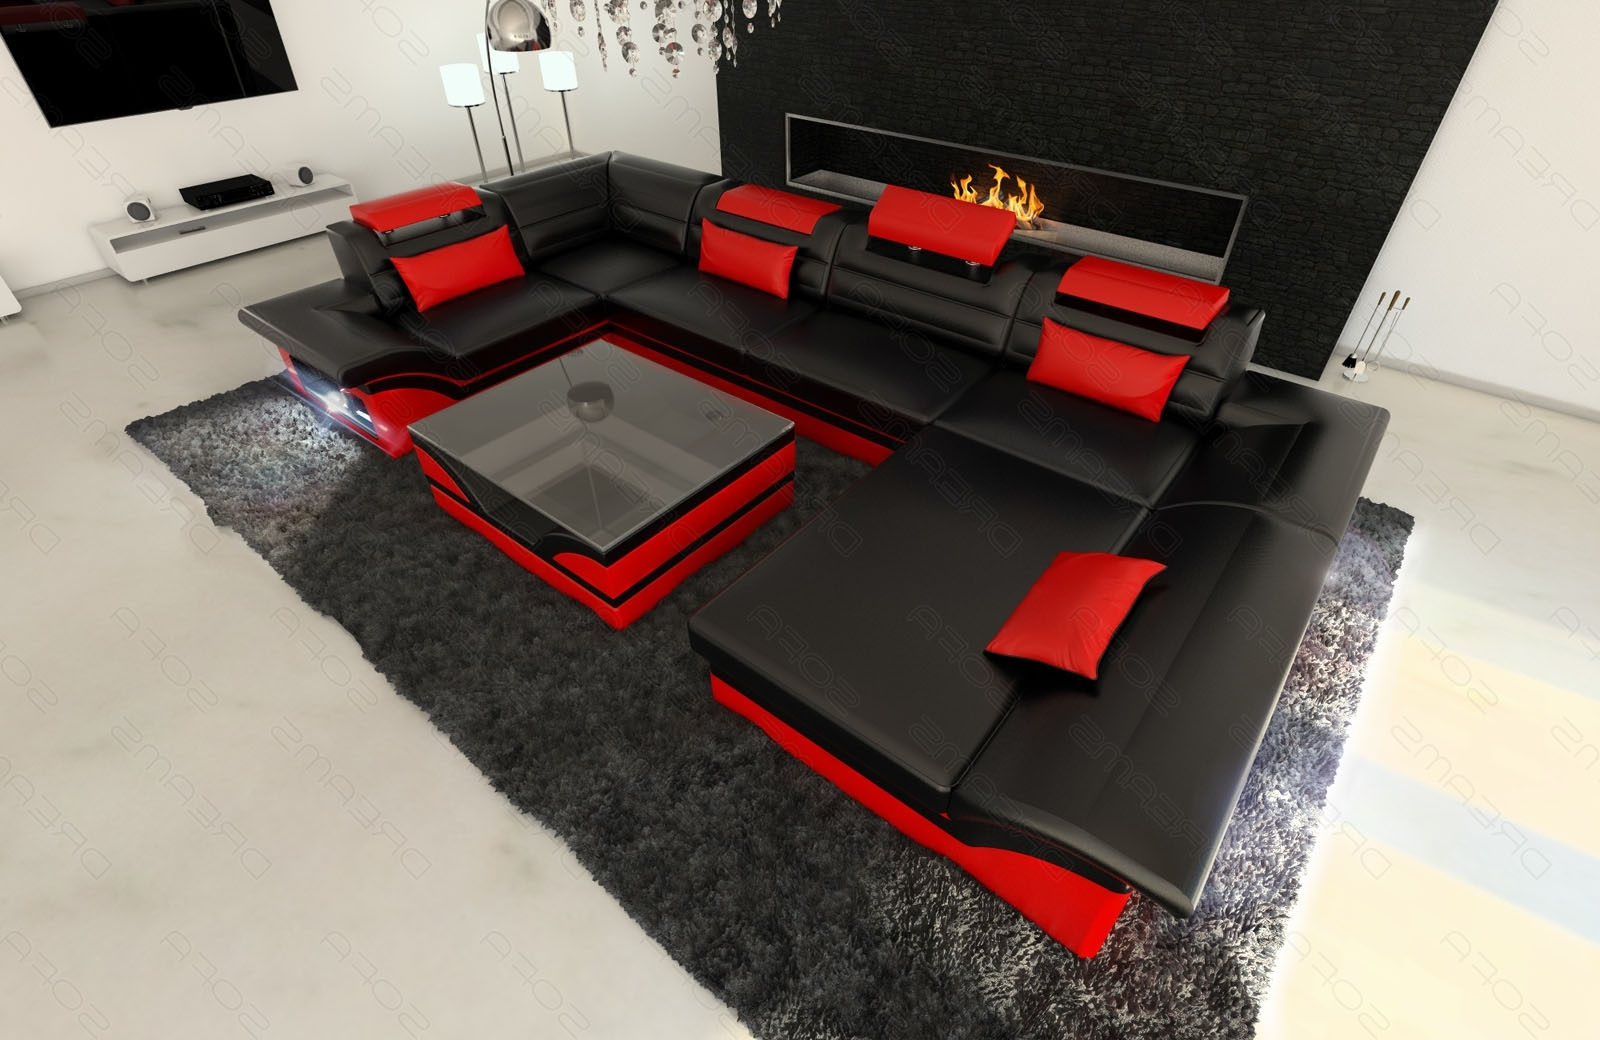 Current Big Leather Sectional Sofa Atlanta With Led Lights U Shape Couch With Red And Black Sofas (View 5 of 20)